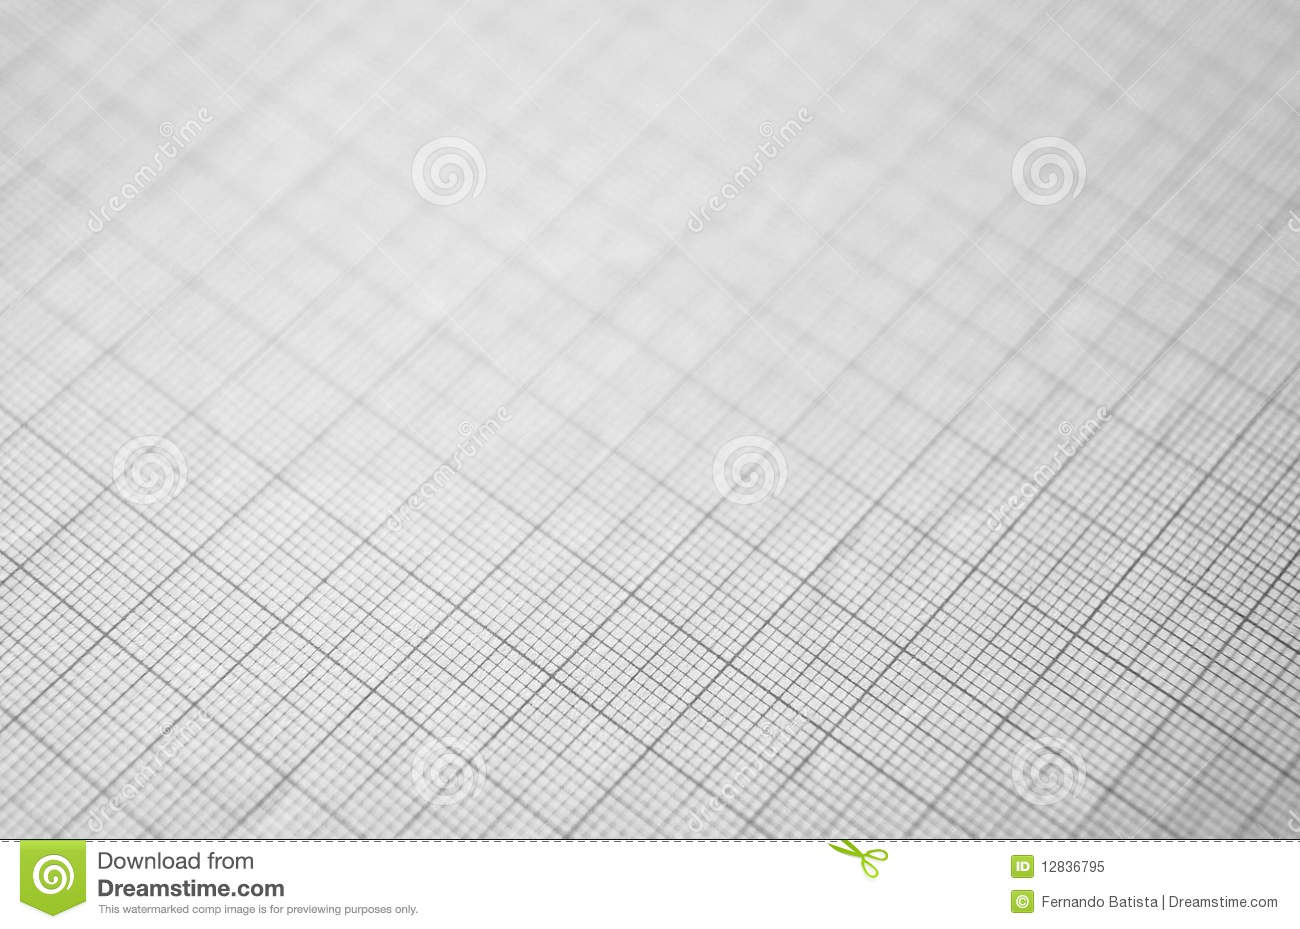 Black graphing paper for